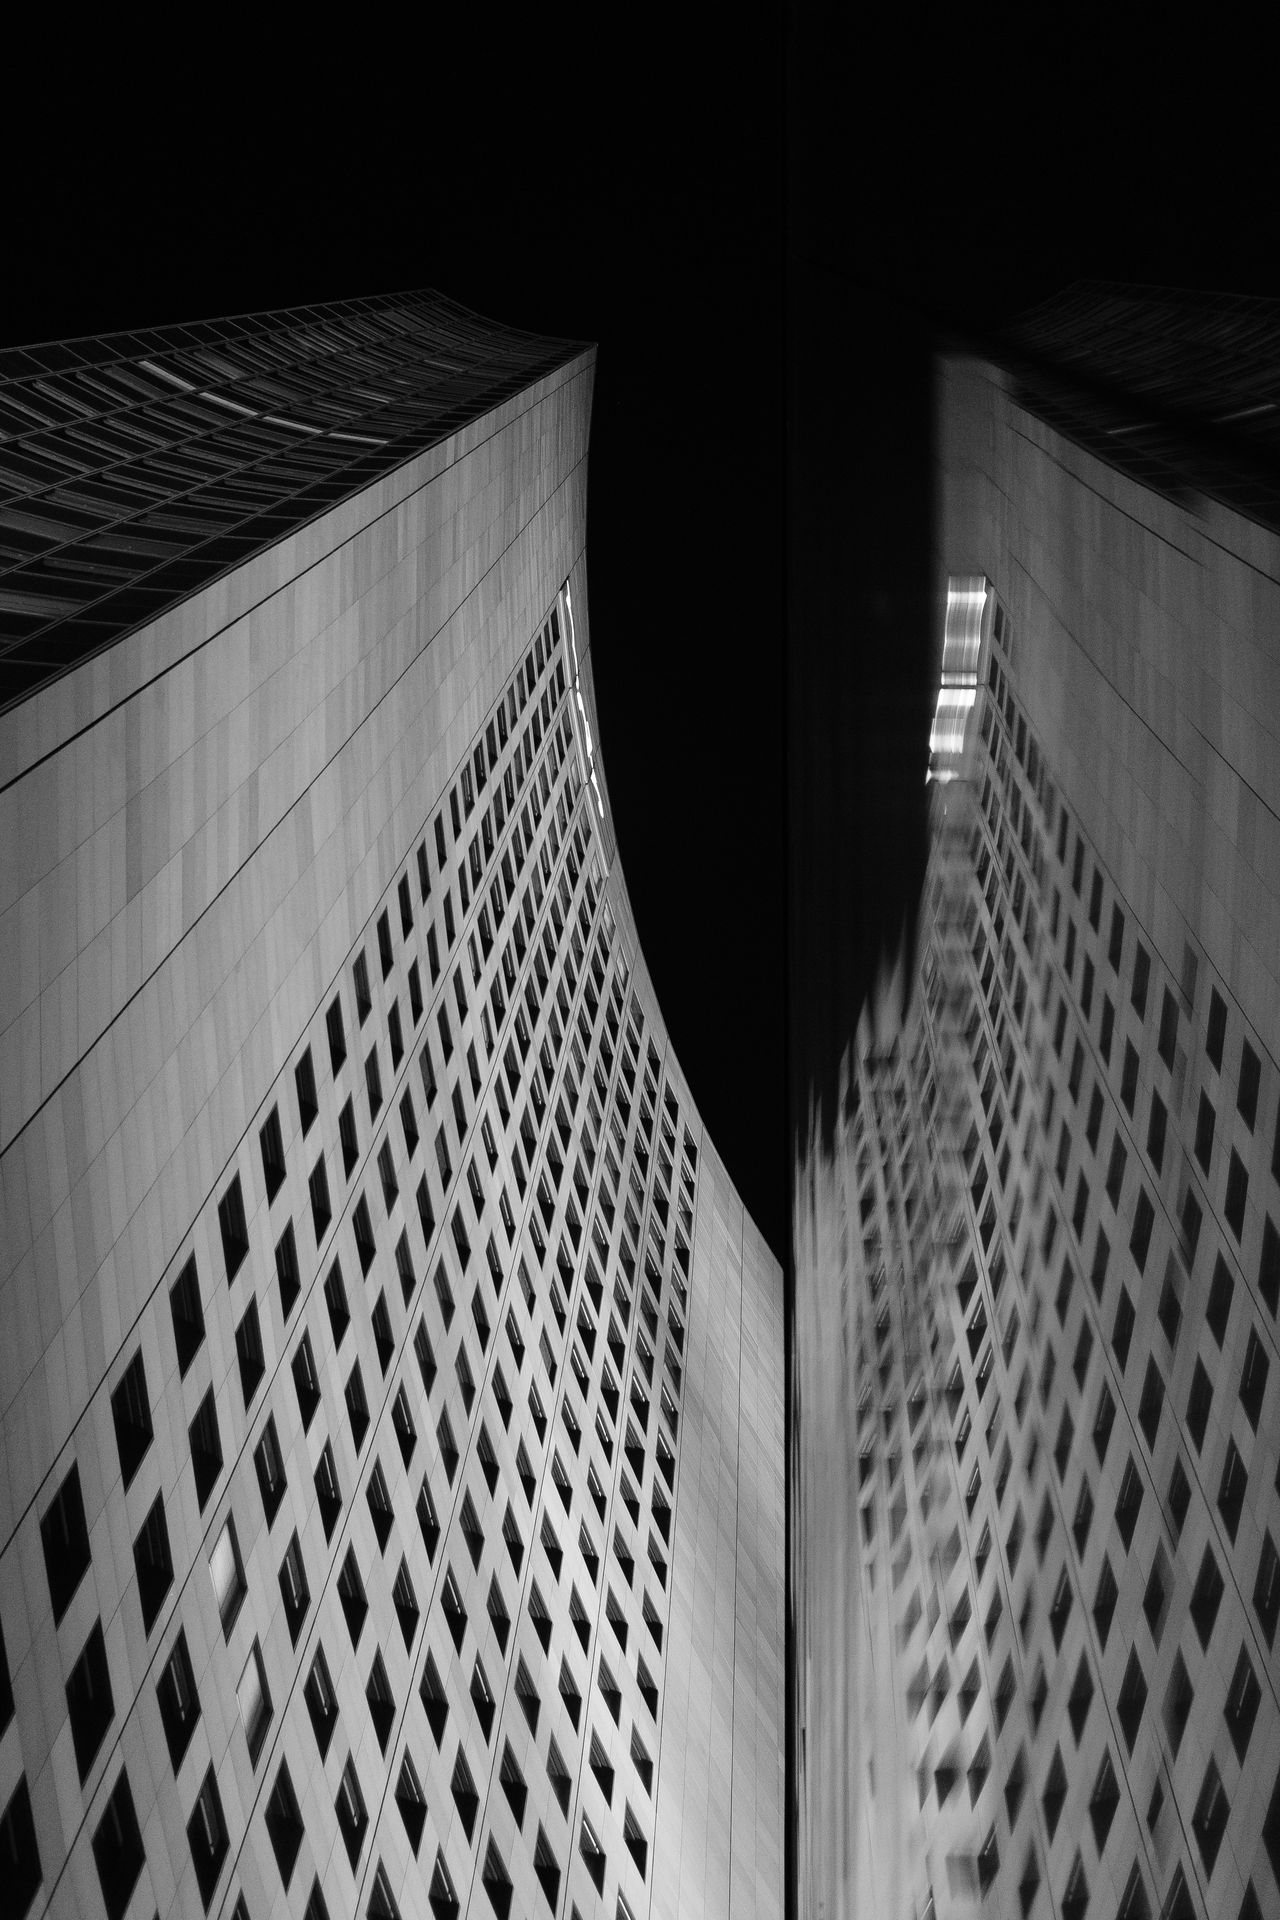 Abstract Architecture Black & White Blackandwhite Building Building Exterior Built Structure Close-up Day Germany Leipzig Night No People Pattern Reflection Skyscraper Uniriese Window